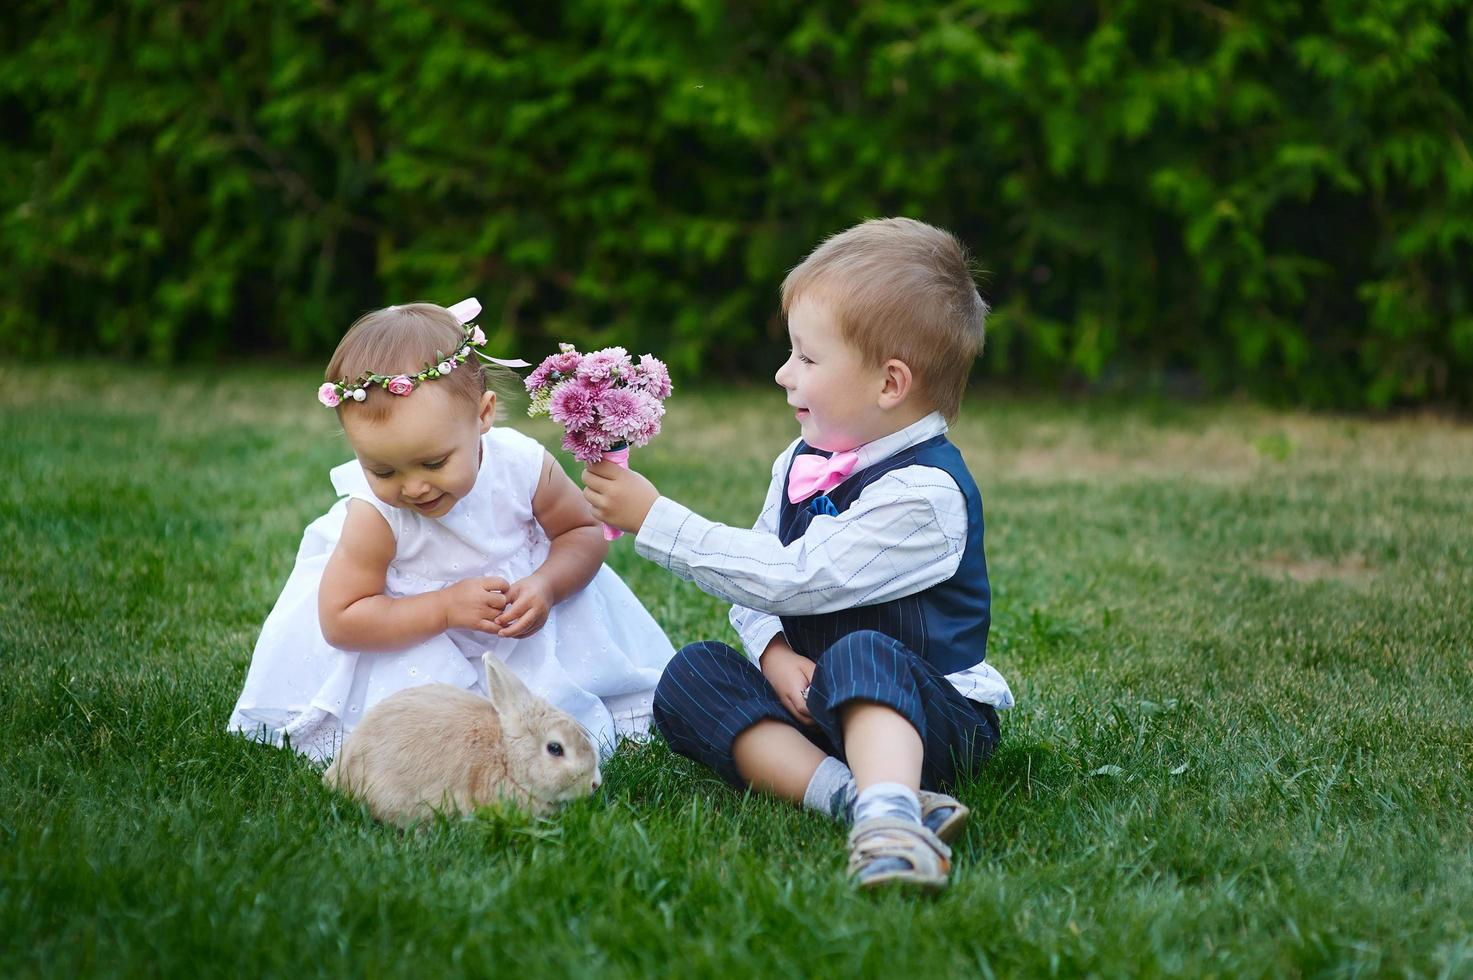 Young boy gives young girl a bouquet of flowers photo